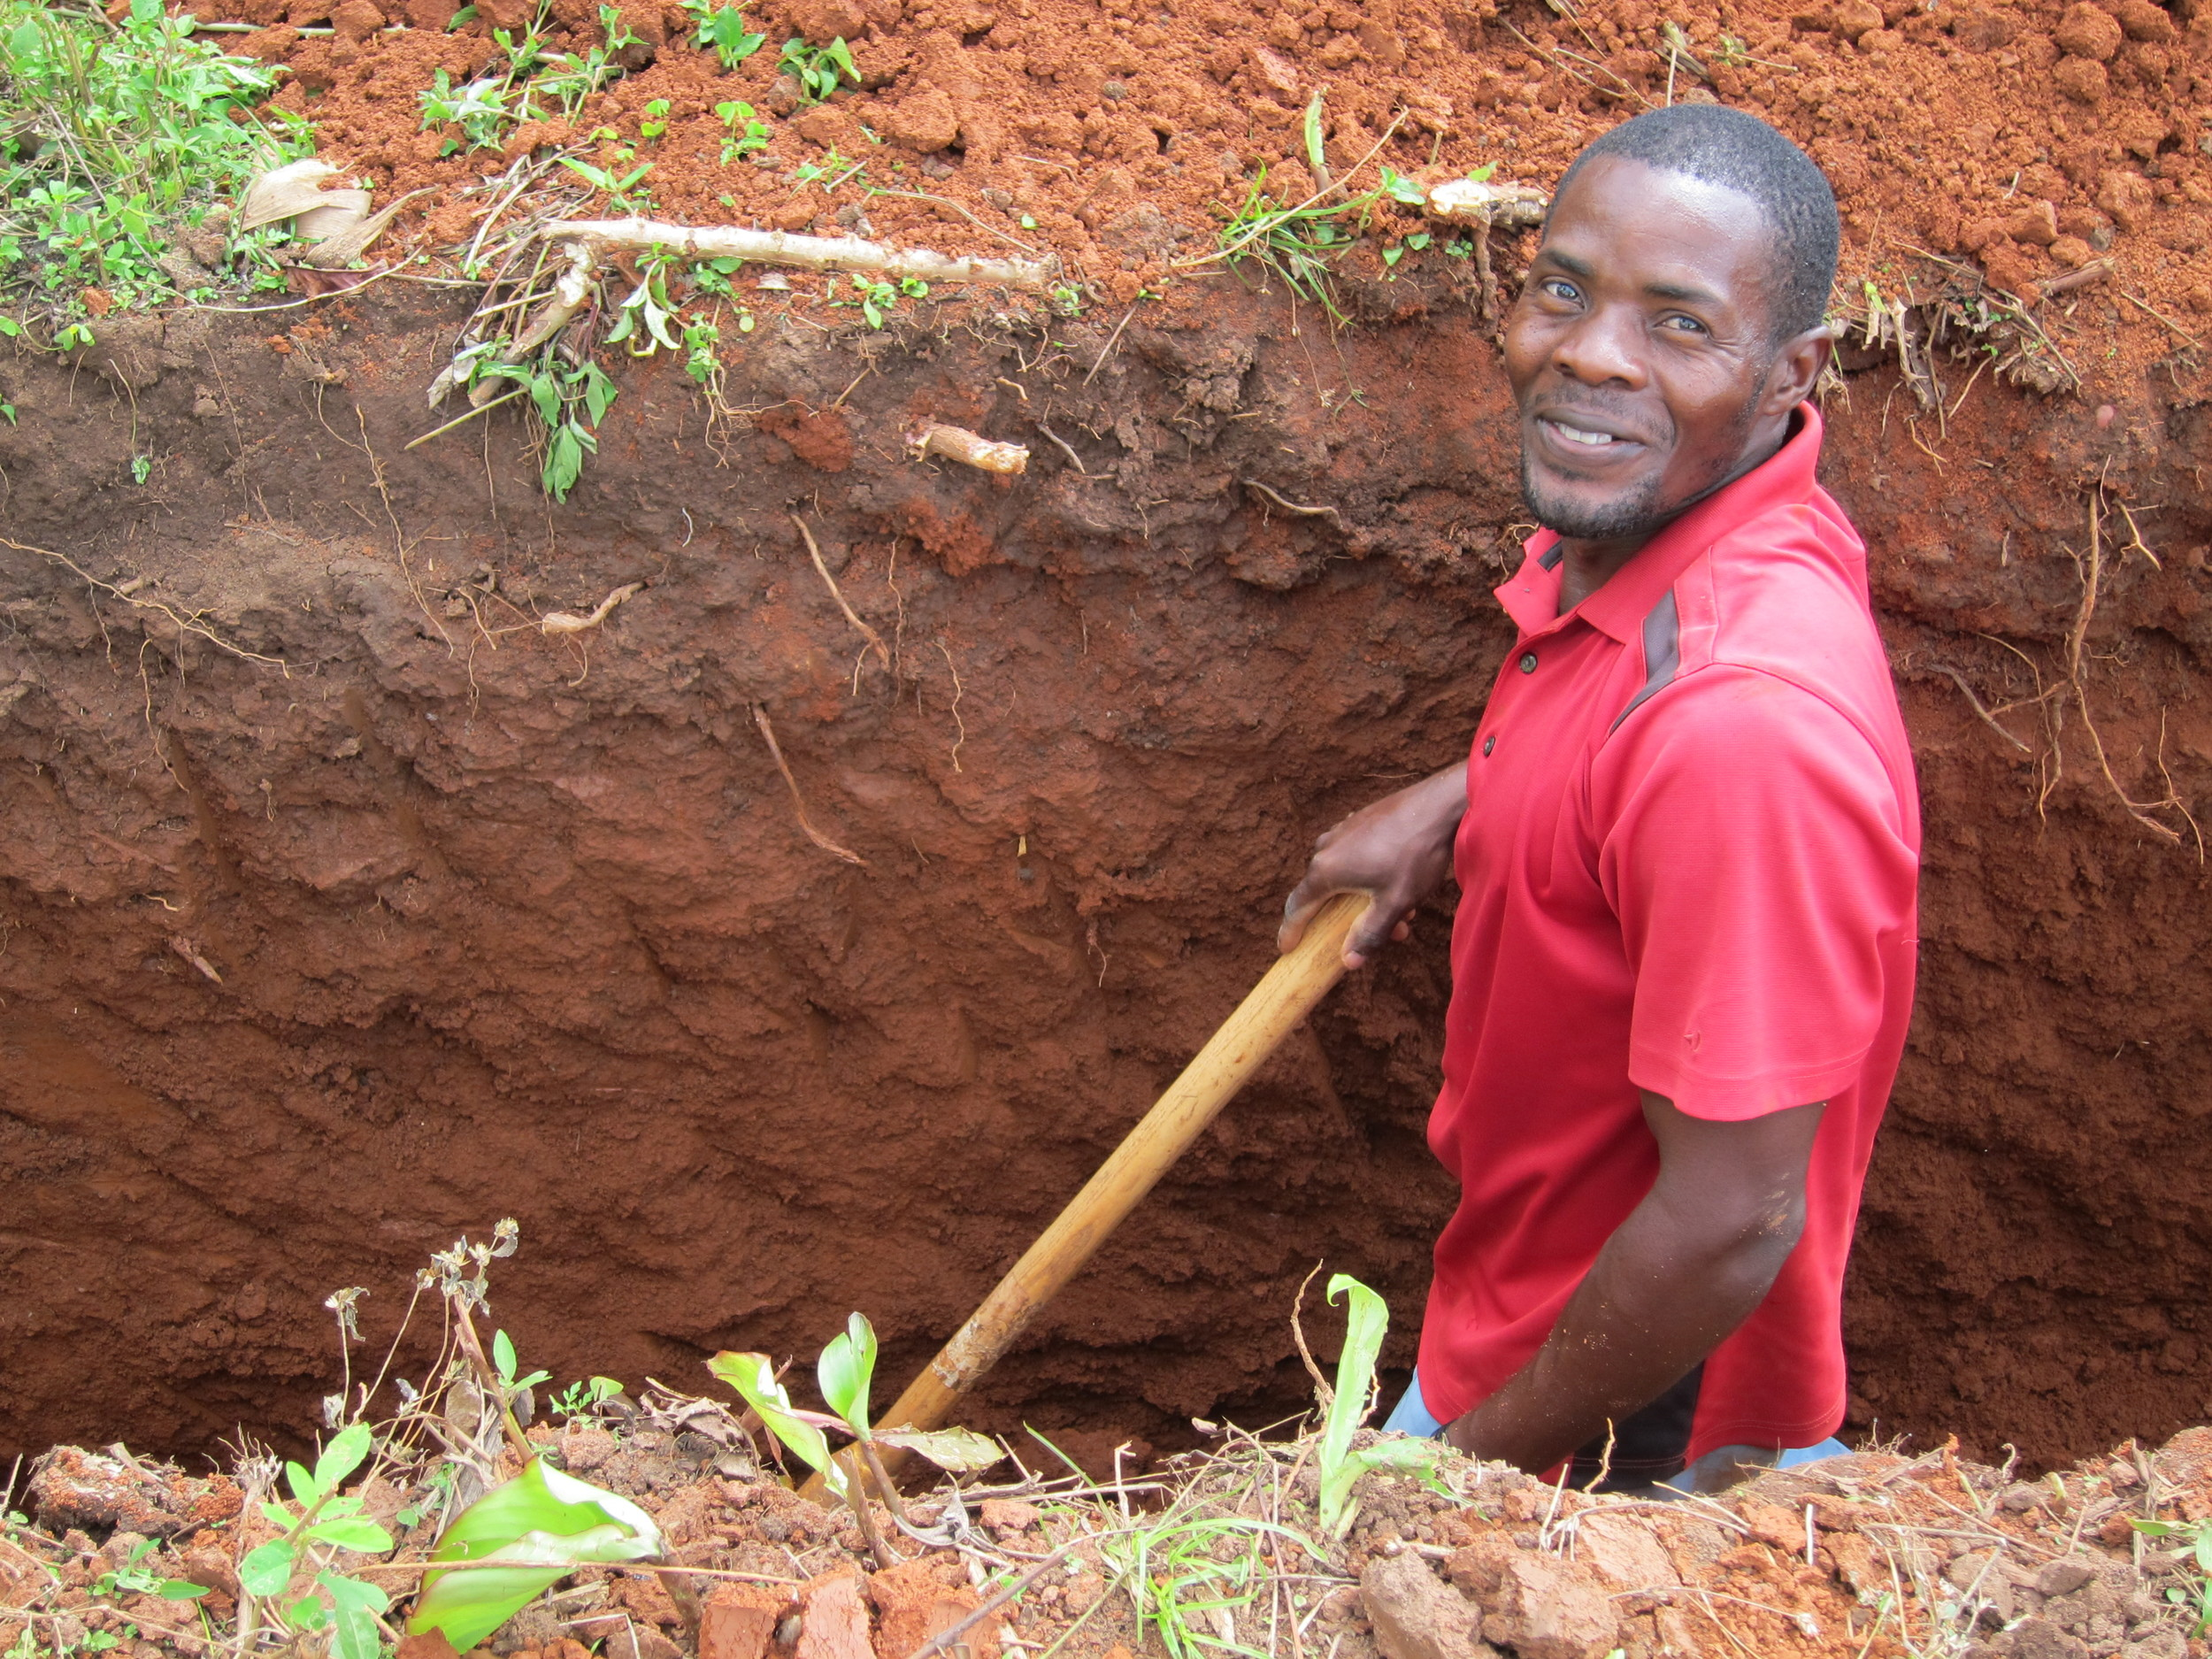 Francis Lubega, a trained mason, has experienced a transformation of mind in learning that he can make an impact on his community through volunteering his skill to improve the environment of those he is in proximity with.